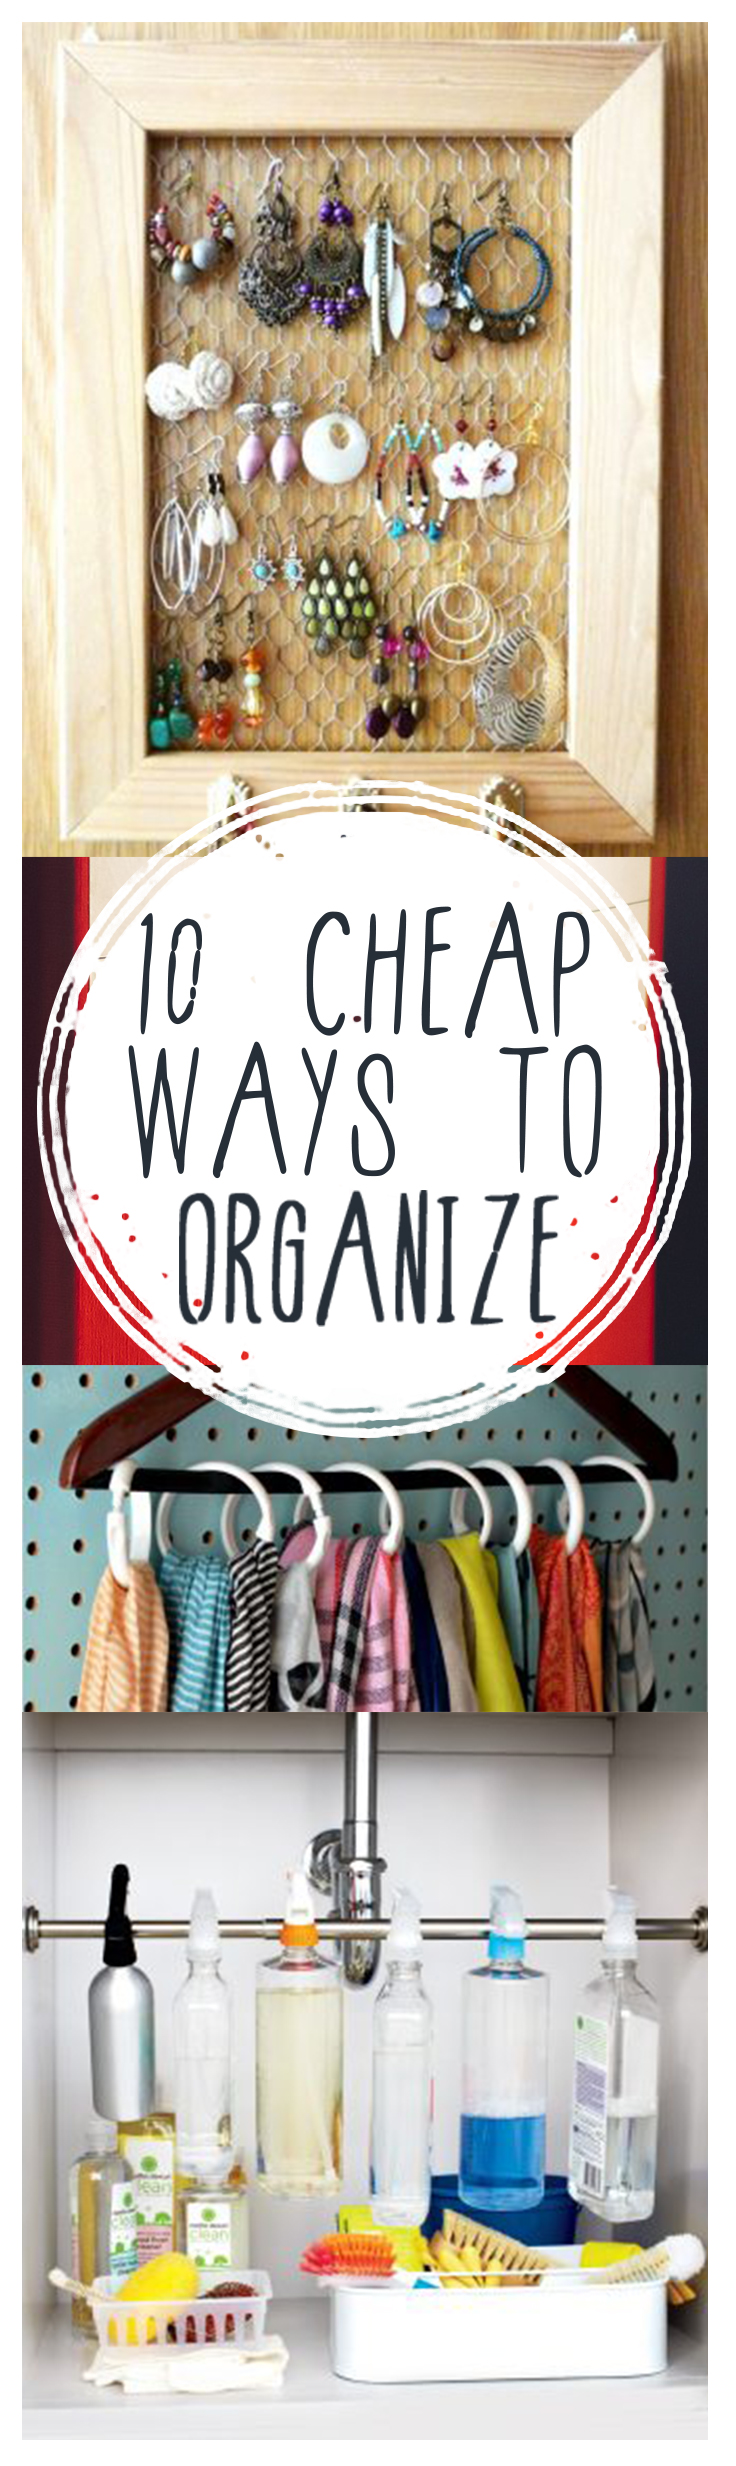 Cheap organization, cheap organization ideas, easy organization, DIY organization, frugal organization, popular pin, frugal living, home organization.